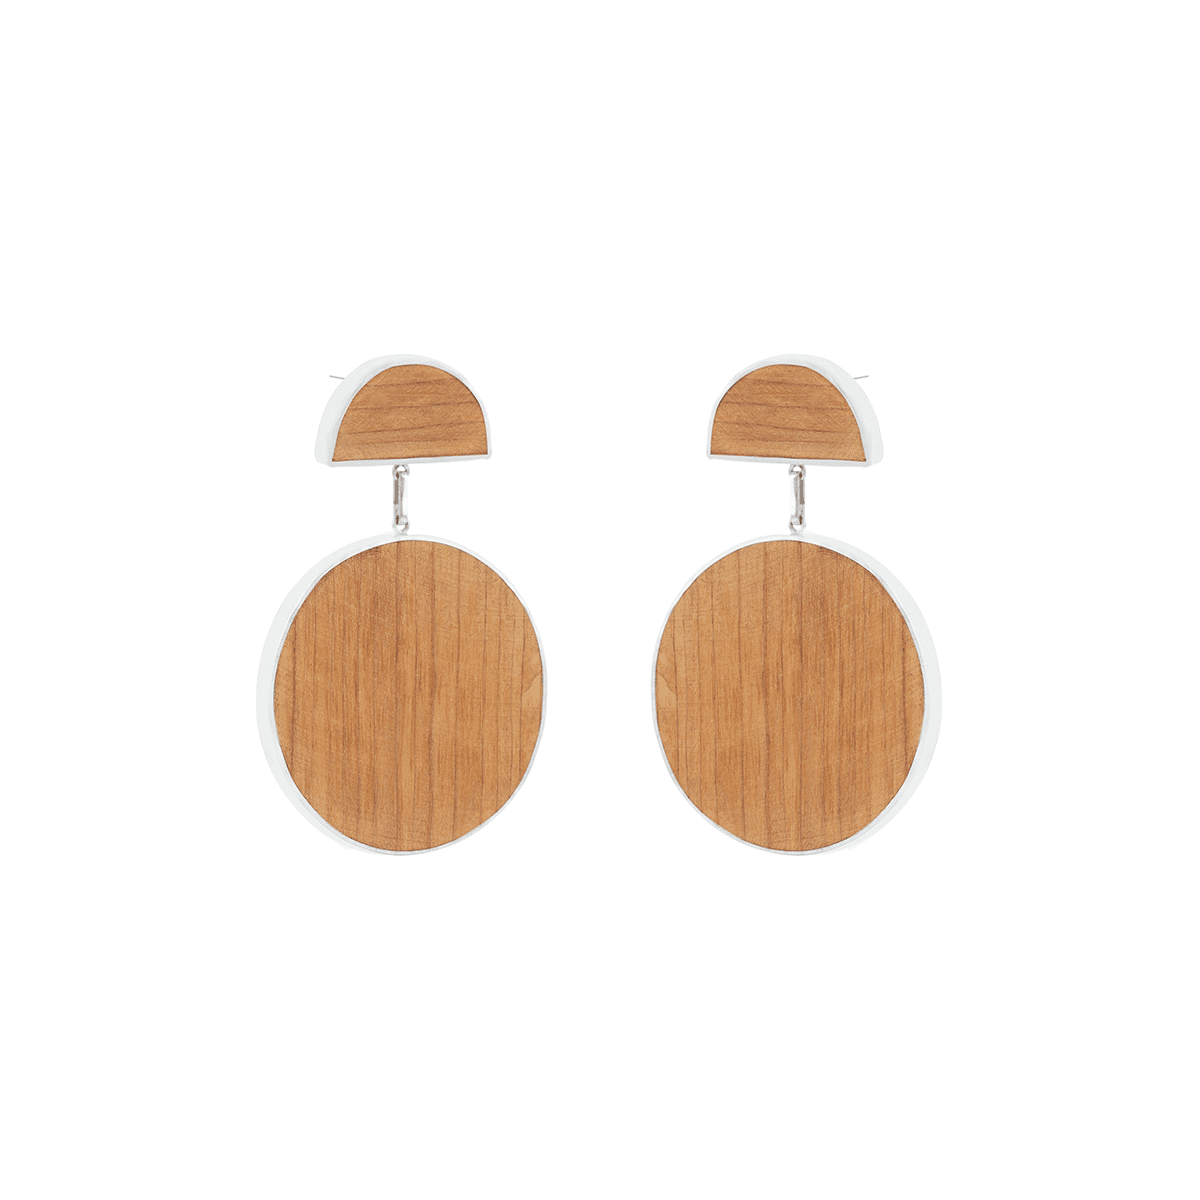 925 Sterling Silver And Birch Wood O-D Earrings